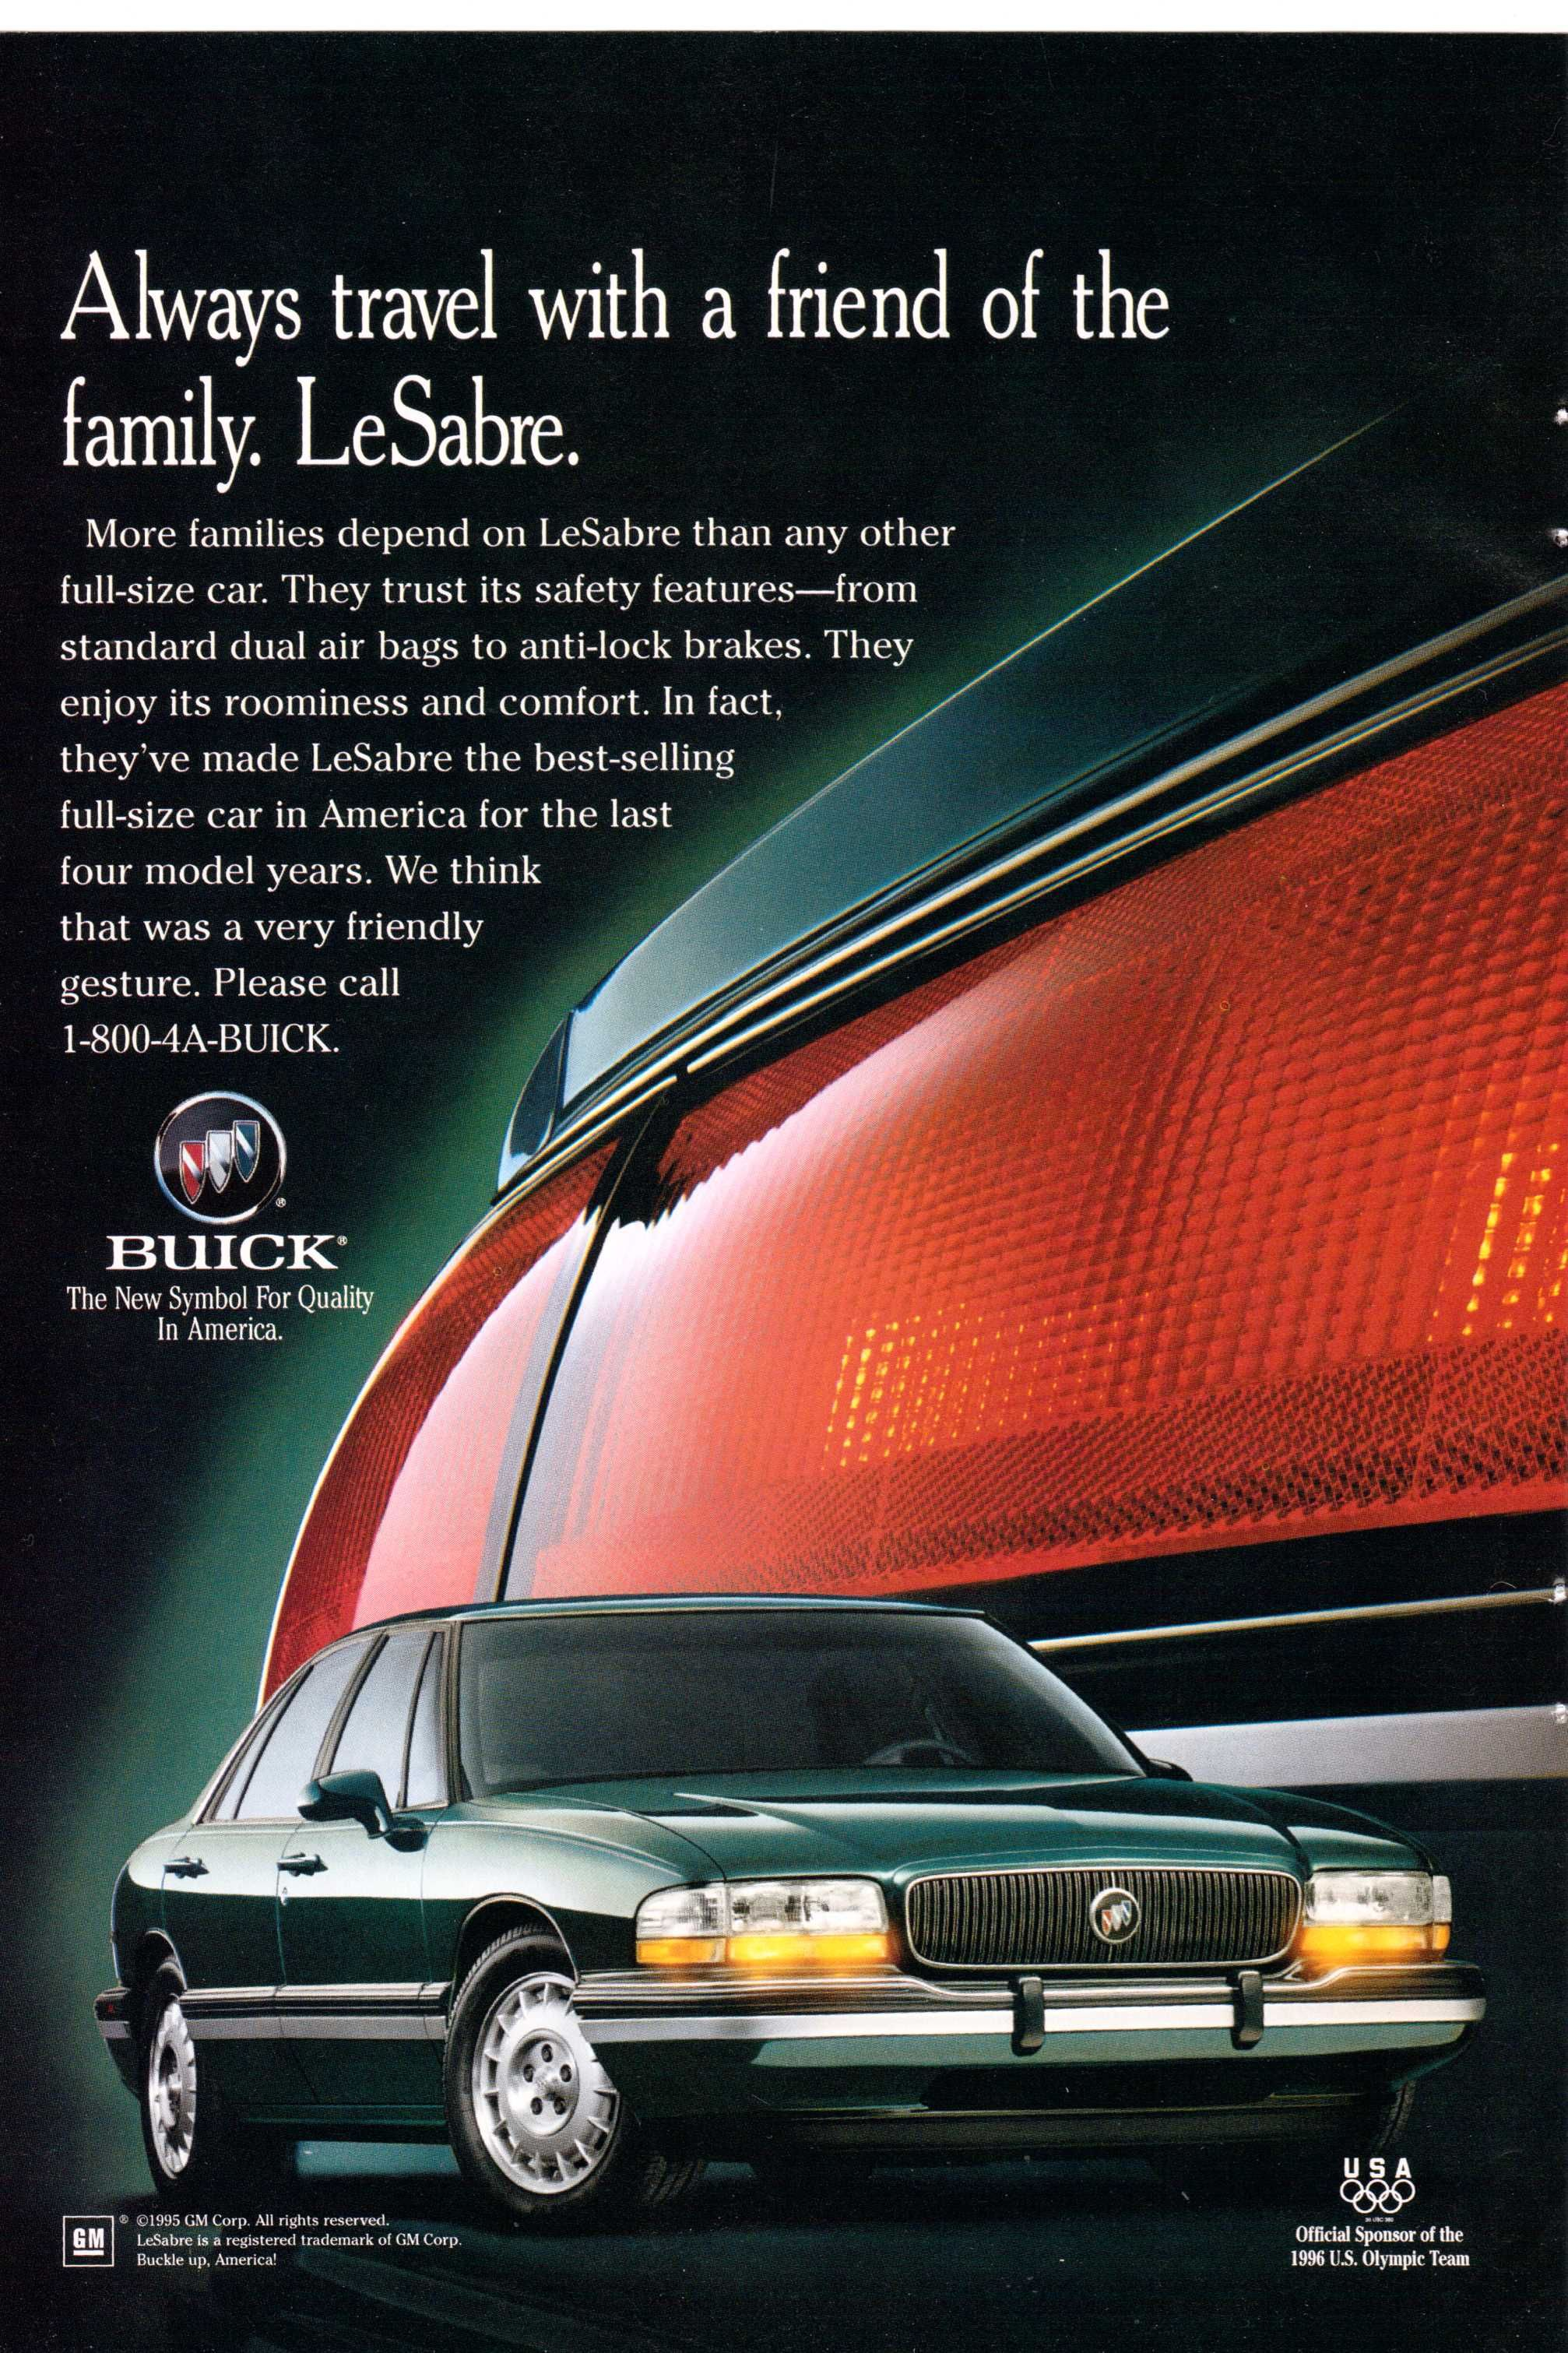 1995 Buick Lesabre Ad From National Geographic October 1995 Buick Lesabre Buick Buick Lucerne